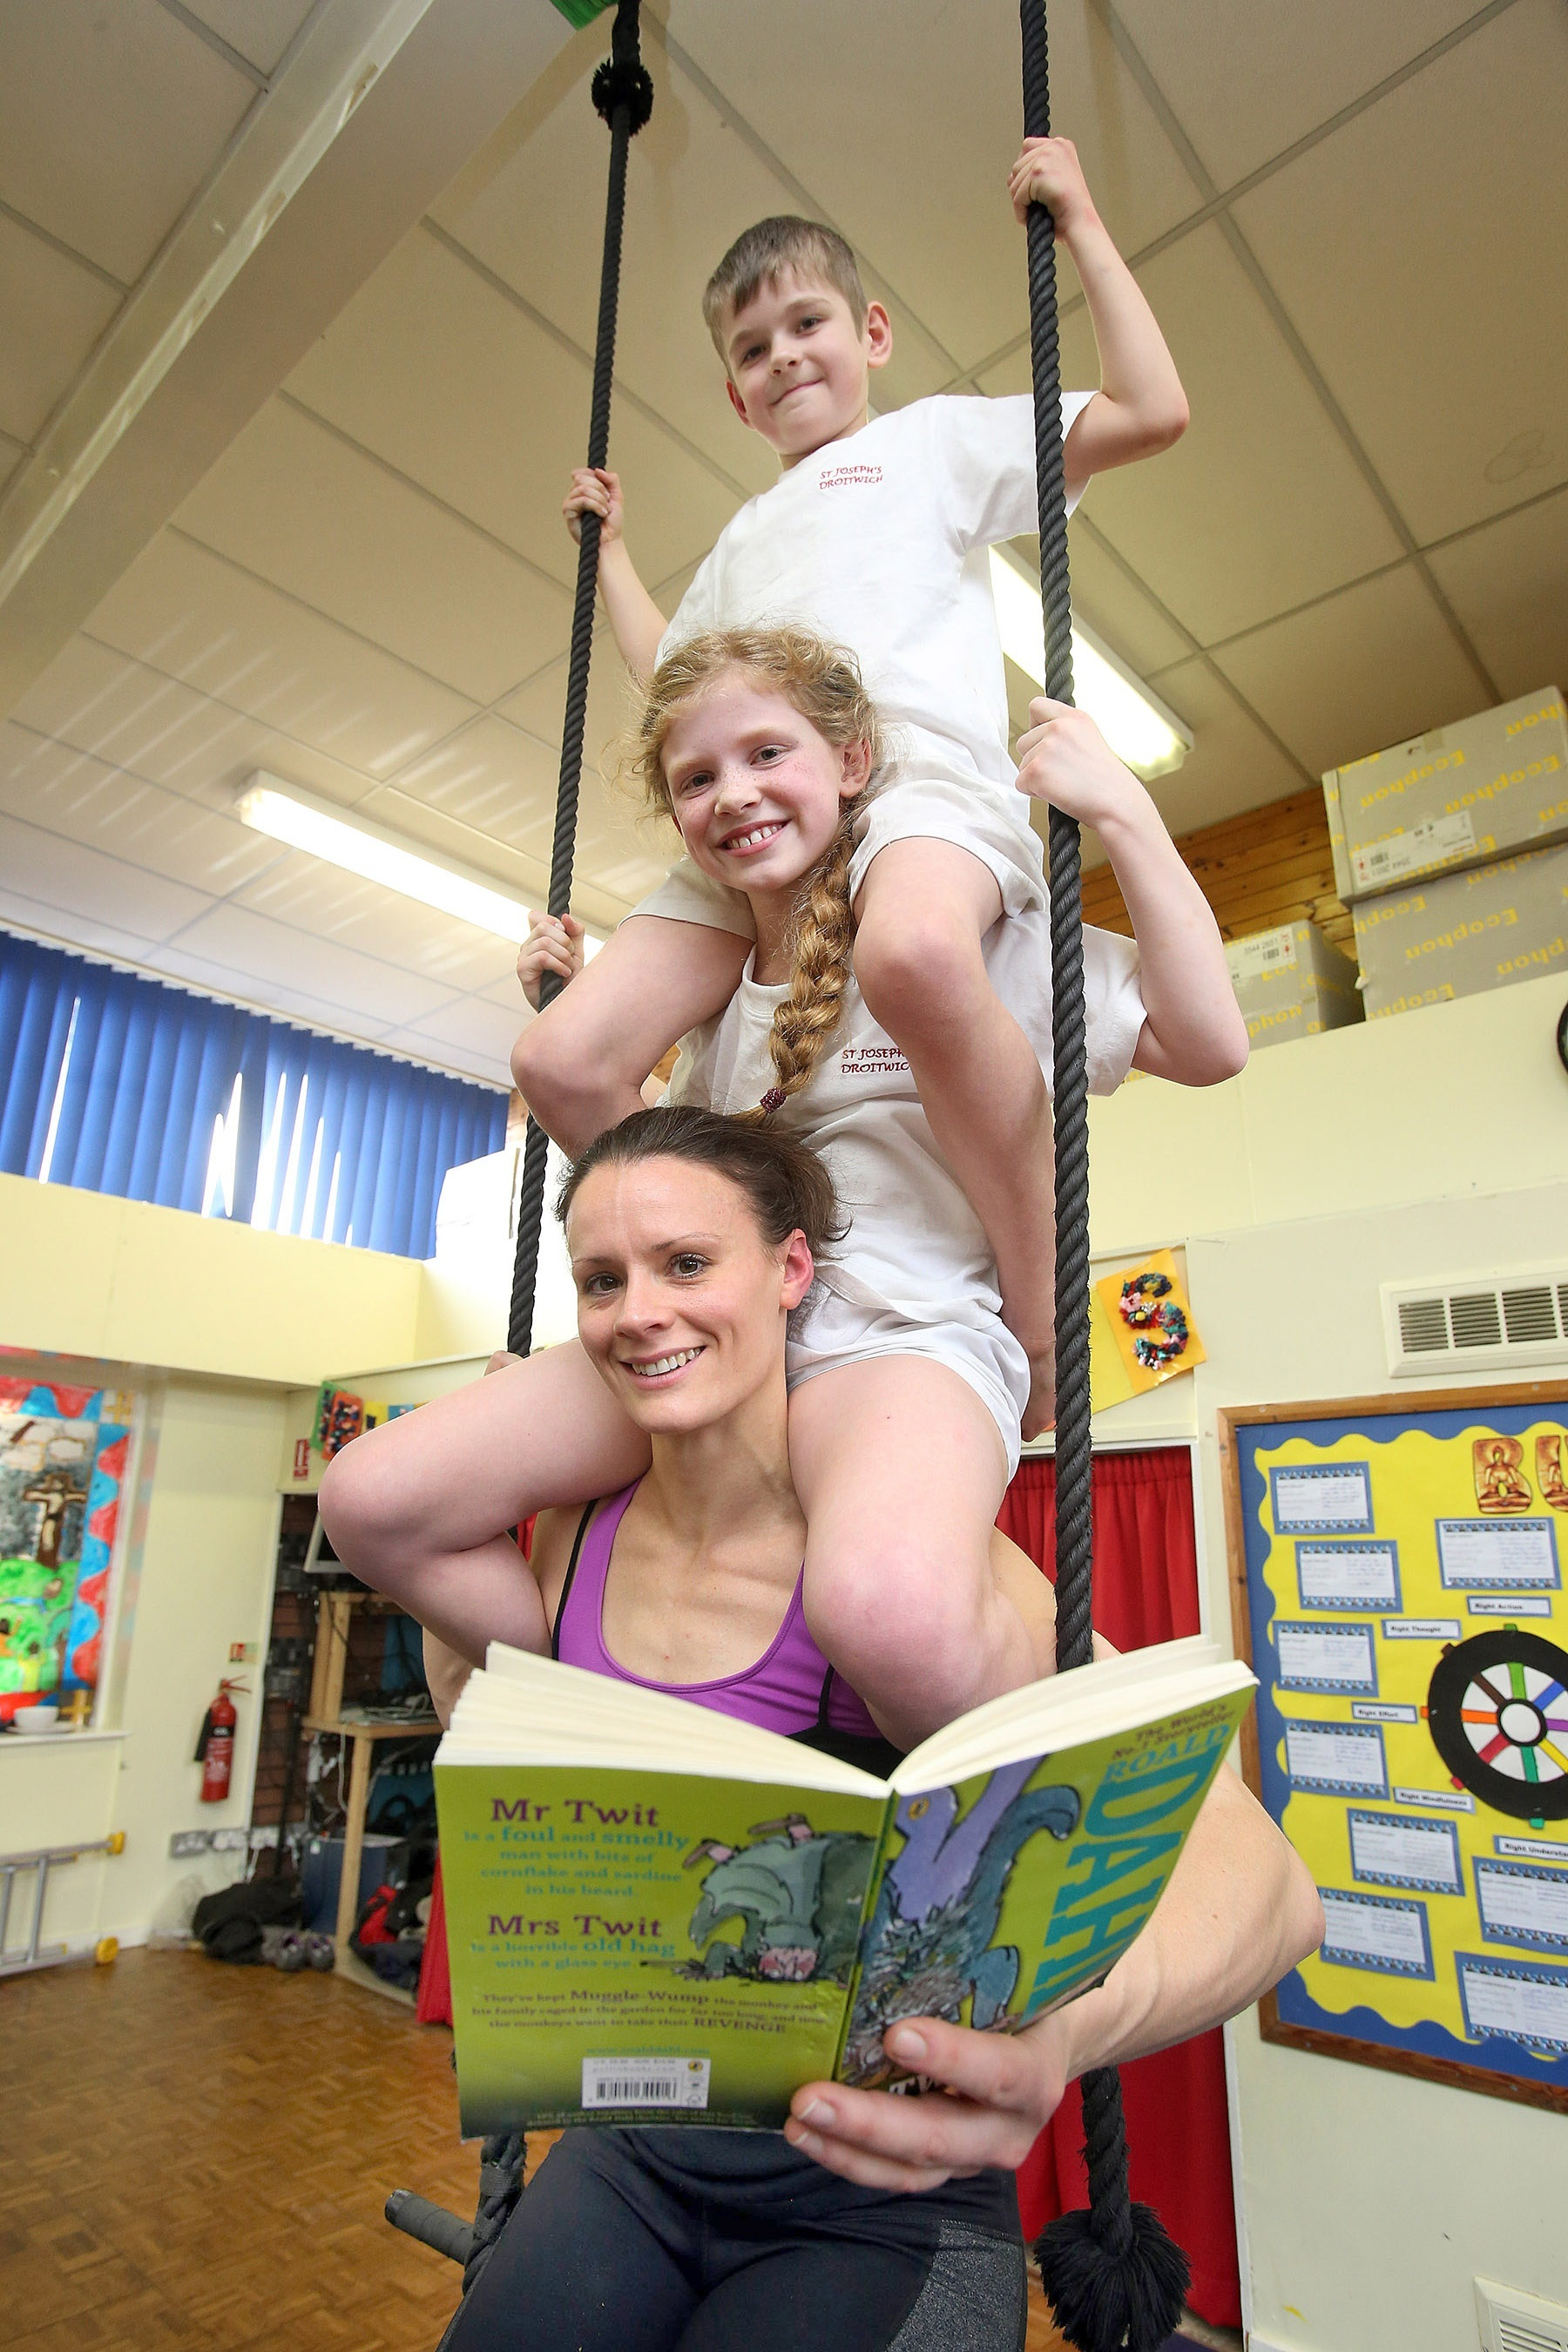 Hanging around with a book at St Joseph's Primary School